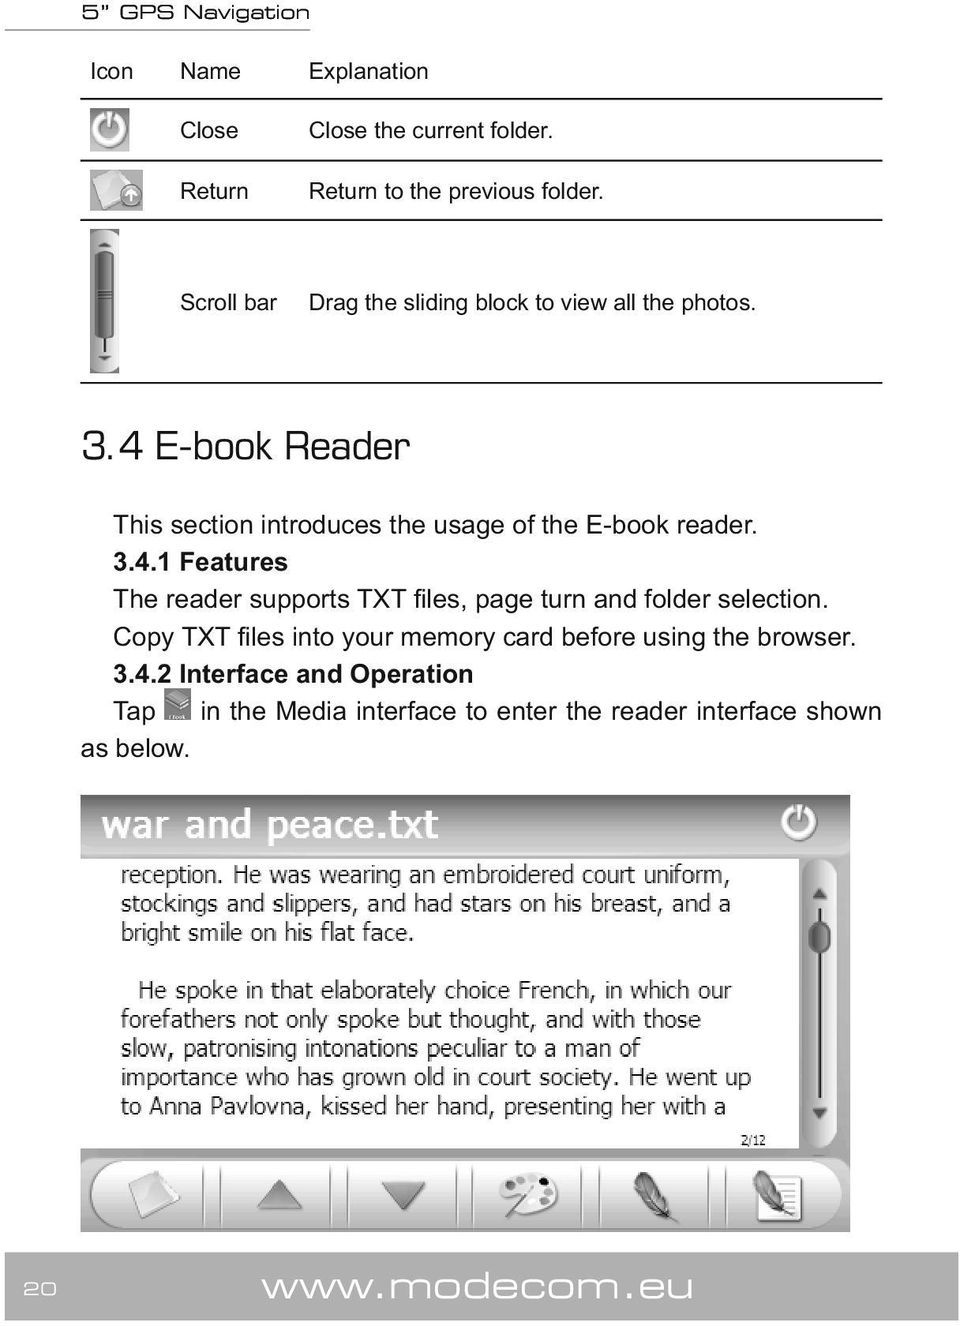 4 E-book Reader This section introduces the usage of the E-book reader. 3.4.1 Features The reader supports TXT files, page turn and folder selection.